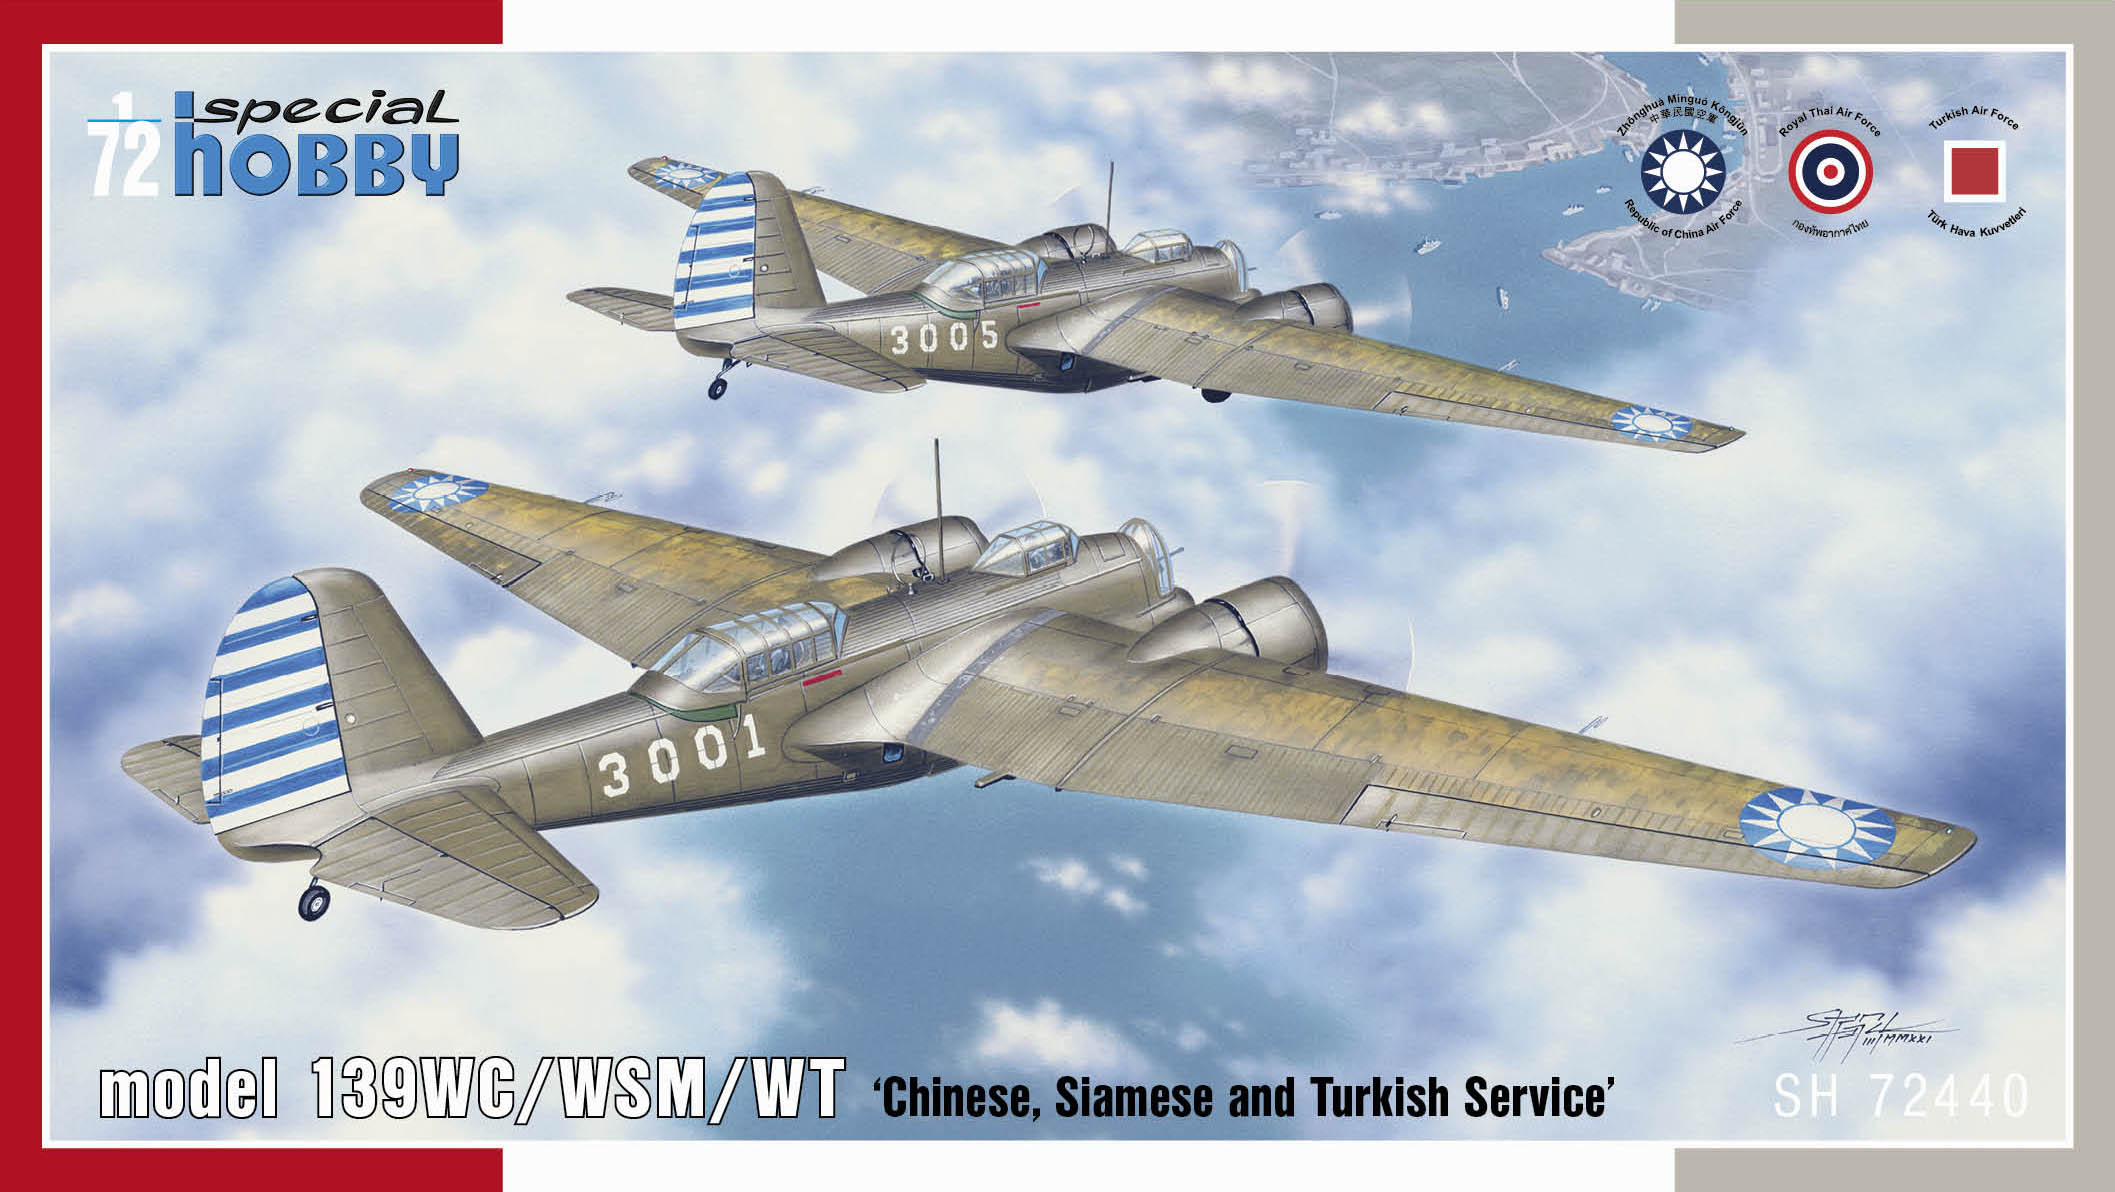 SPECIAL HOBBY 1/72 Model 139WC/WSM/WT Chinese, Siamese and Turkish Service - zvìtšit obrázek